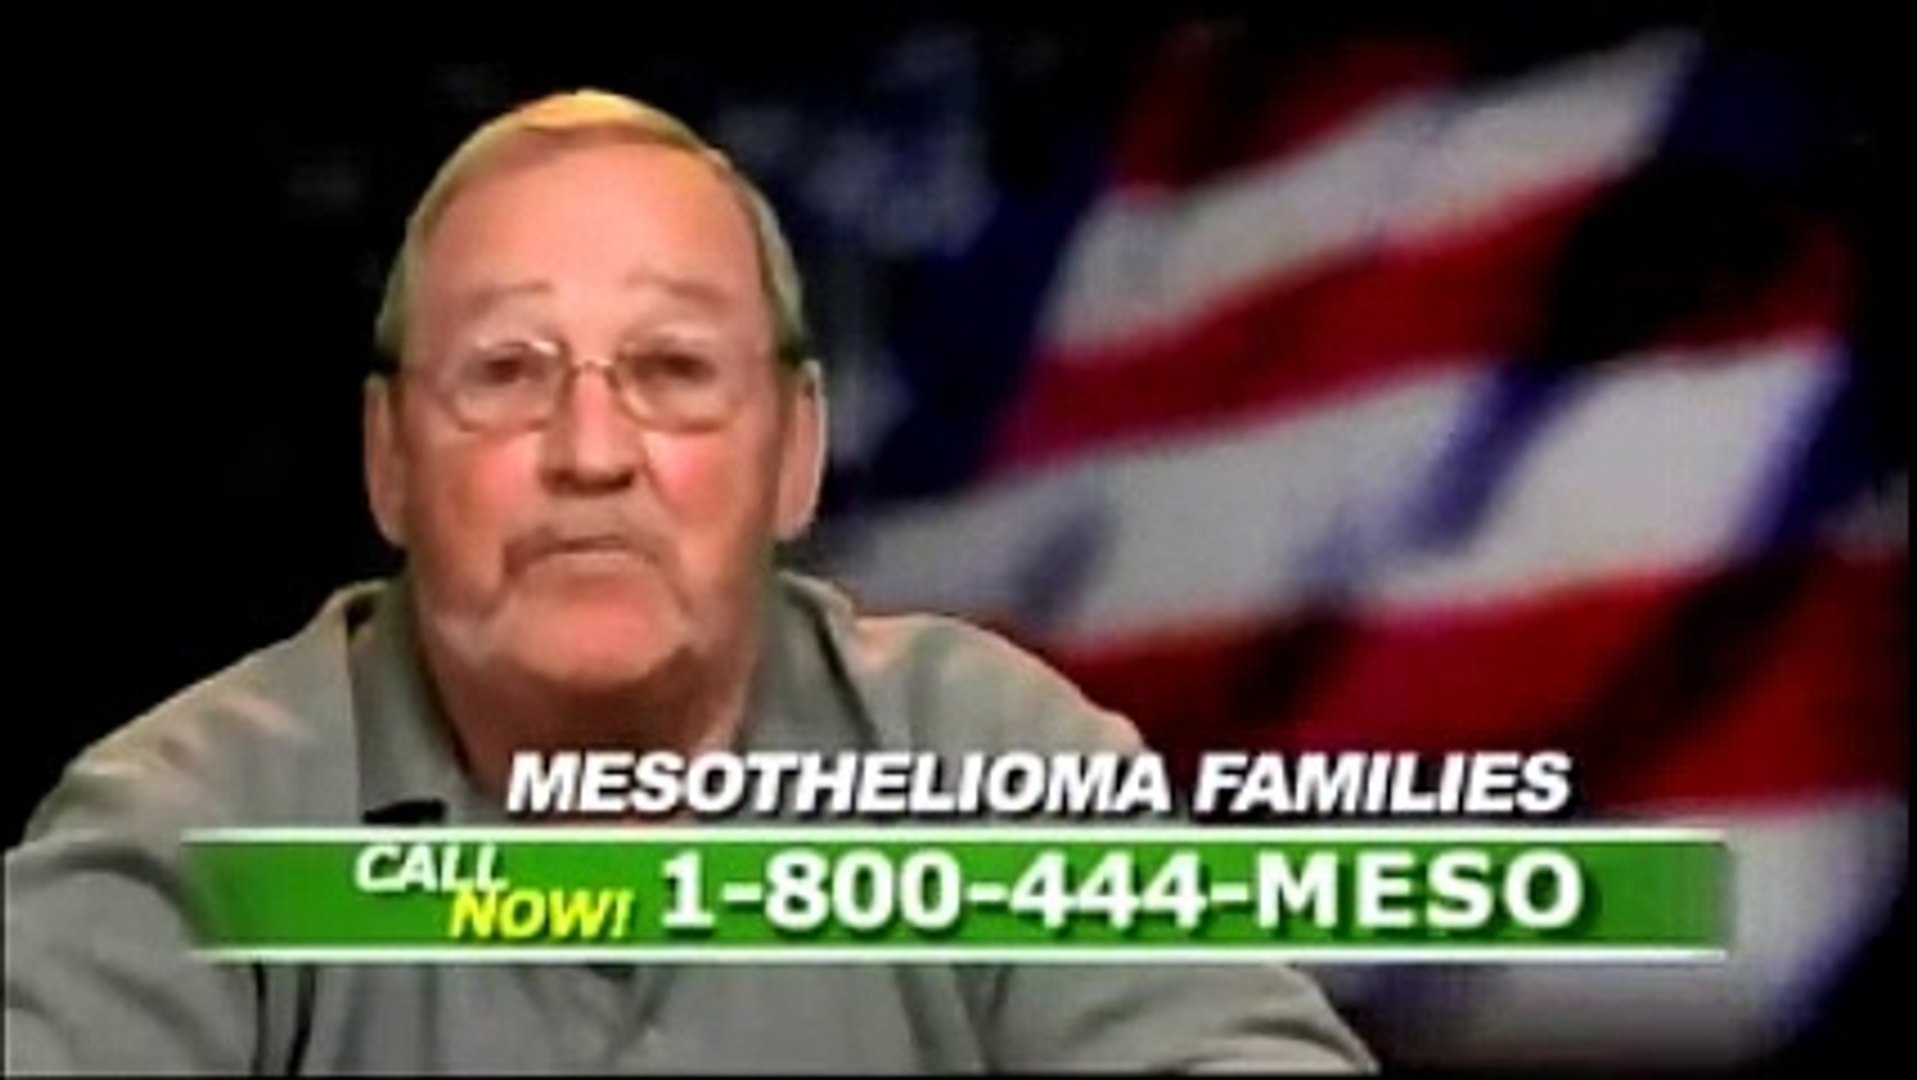 My name is Doug, and i have mesothelioma for 10 minutes